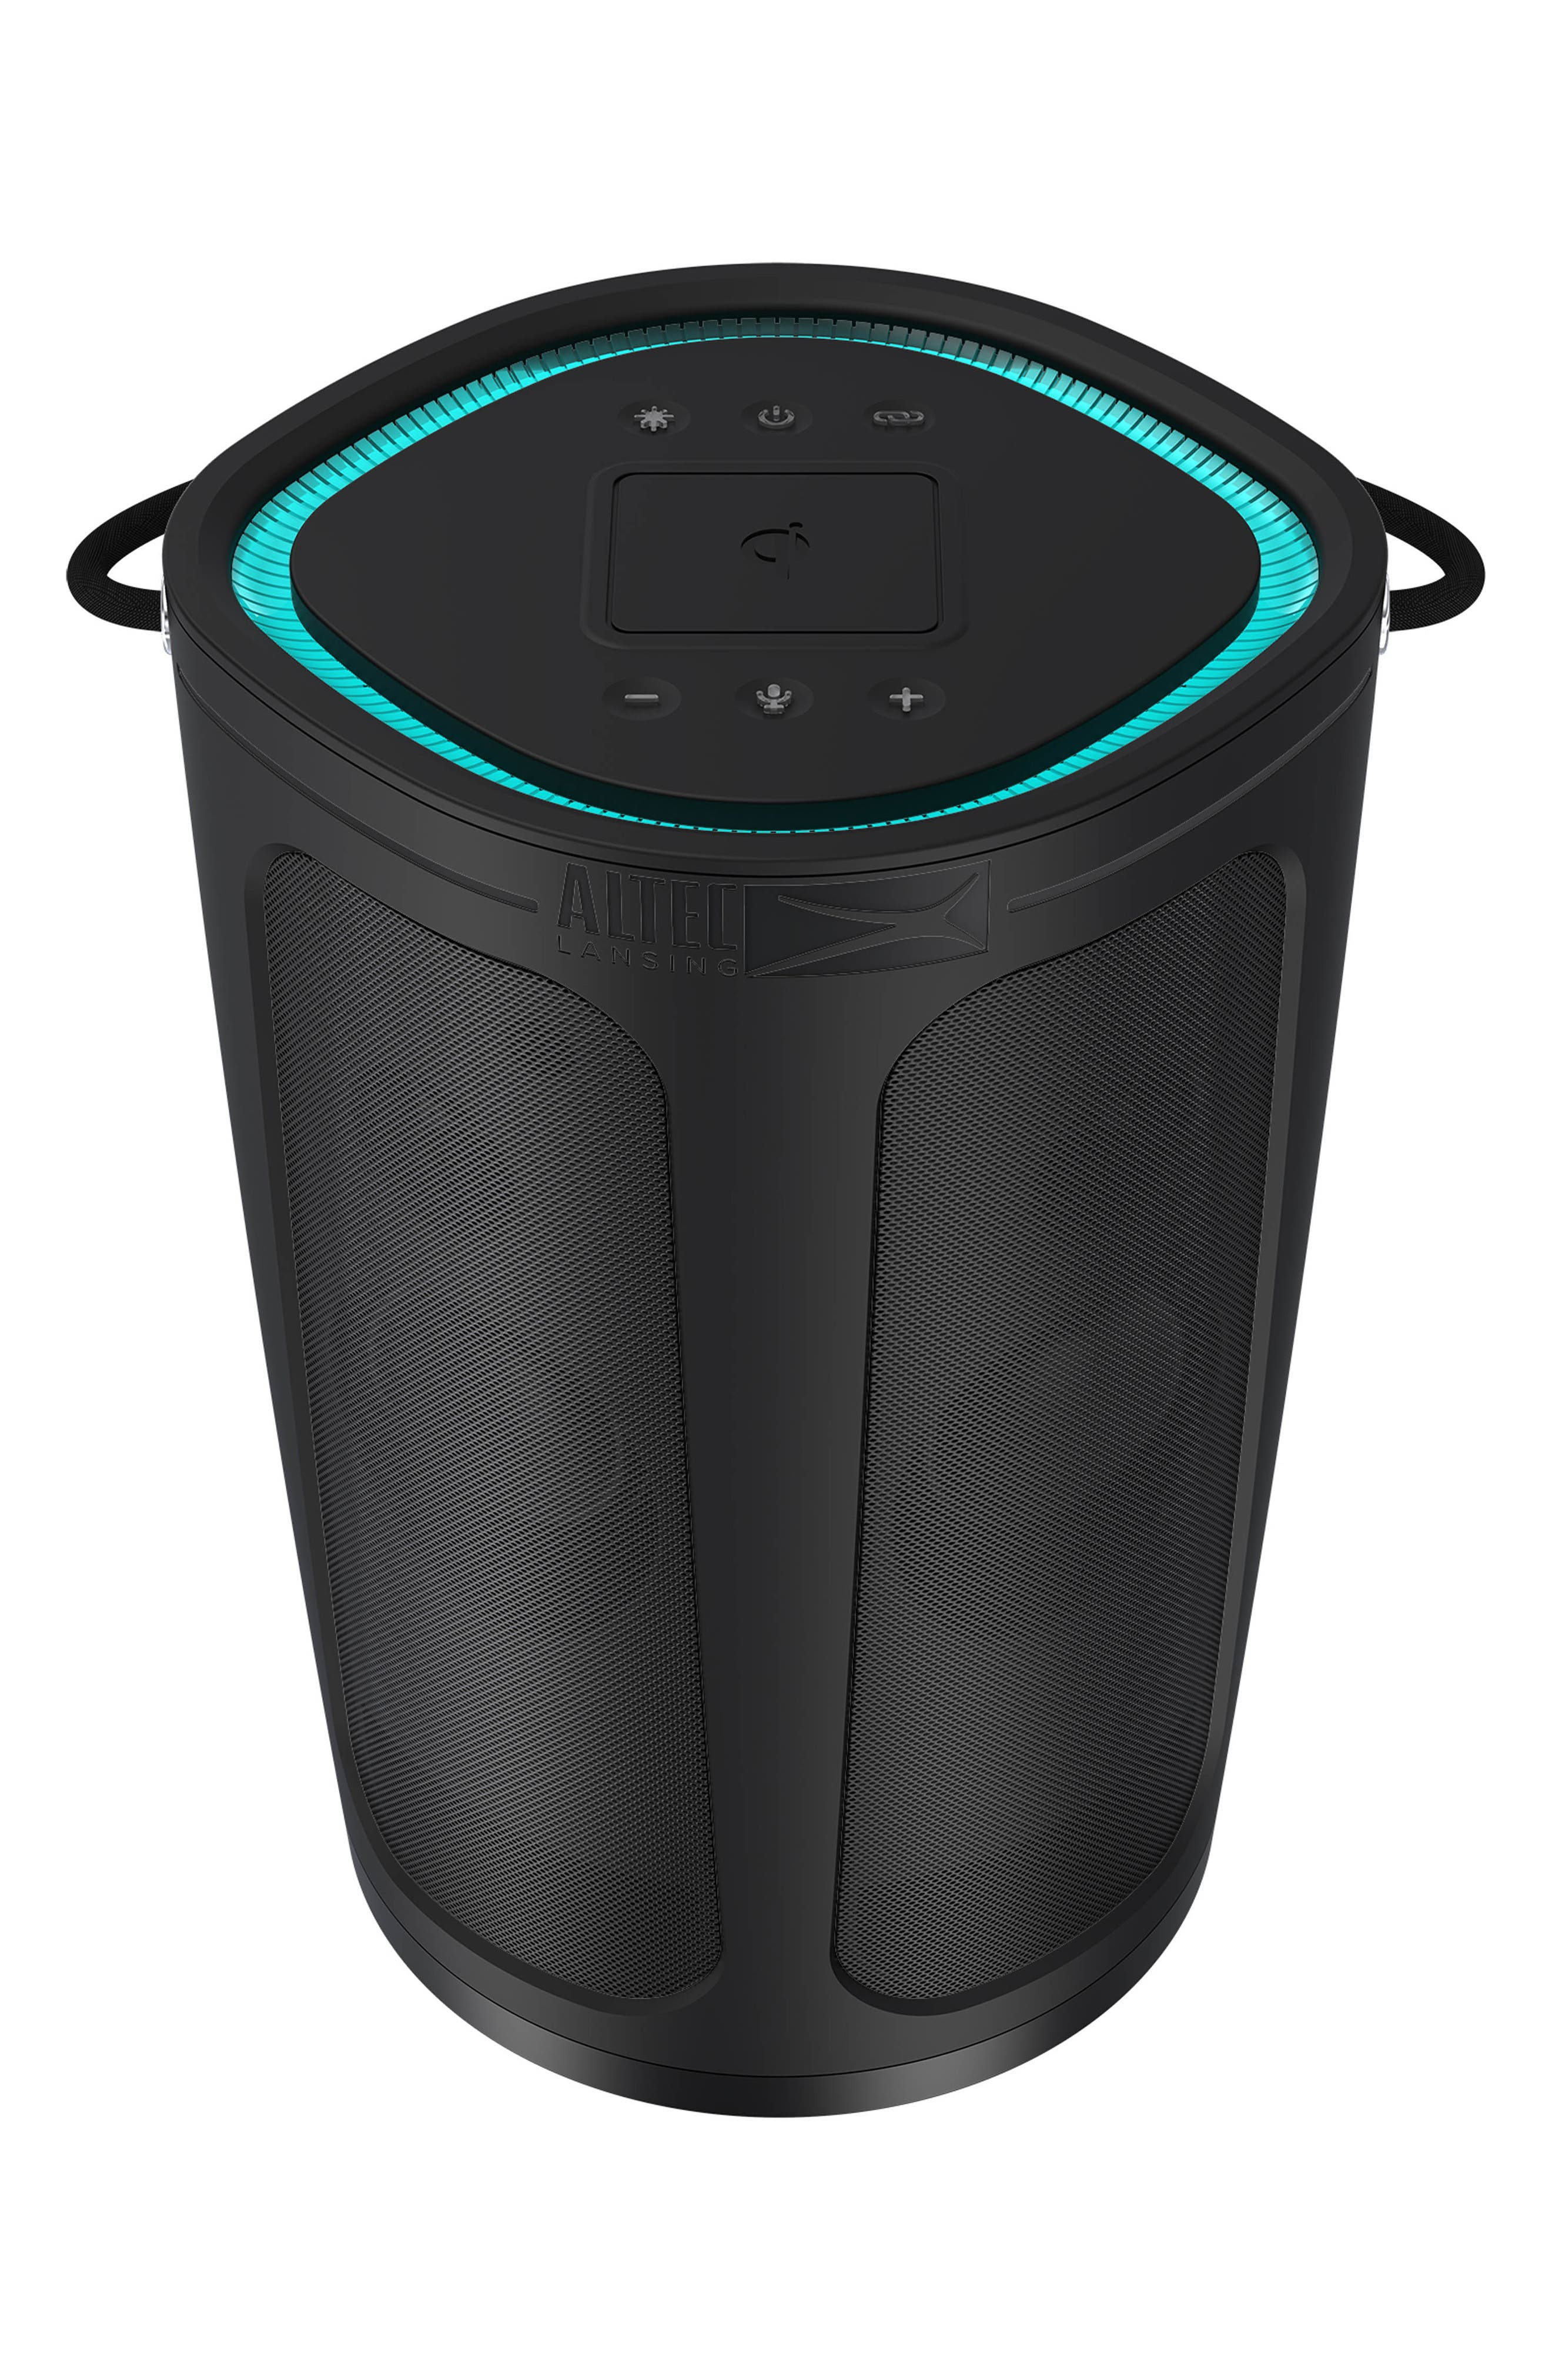 A bucket-shaped wireless speaker packs in and packs out the beach, pool or picnic spot in a splashproof, Bluetooth sound-boosting design. Even as it streams music wirelessly from your phone, wireless charging keeps it powered so the booming bass from the bucket doesn\\\'t have to stop. Includes: Speaker, USB charging cableWireless connectivity: BluetoothSystem compatibility: Apple and Android devicesAdditional features: LED-illuminated lights,